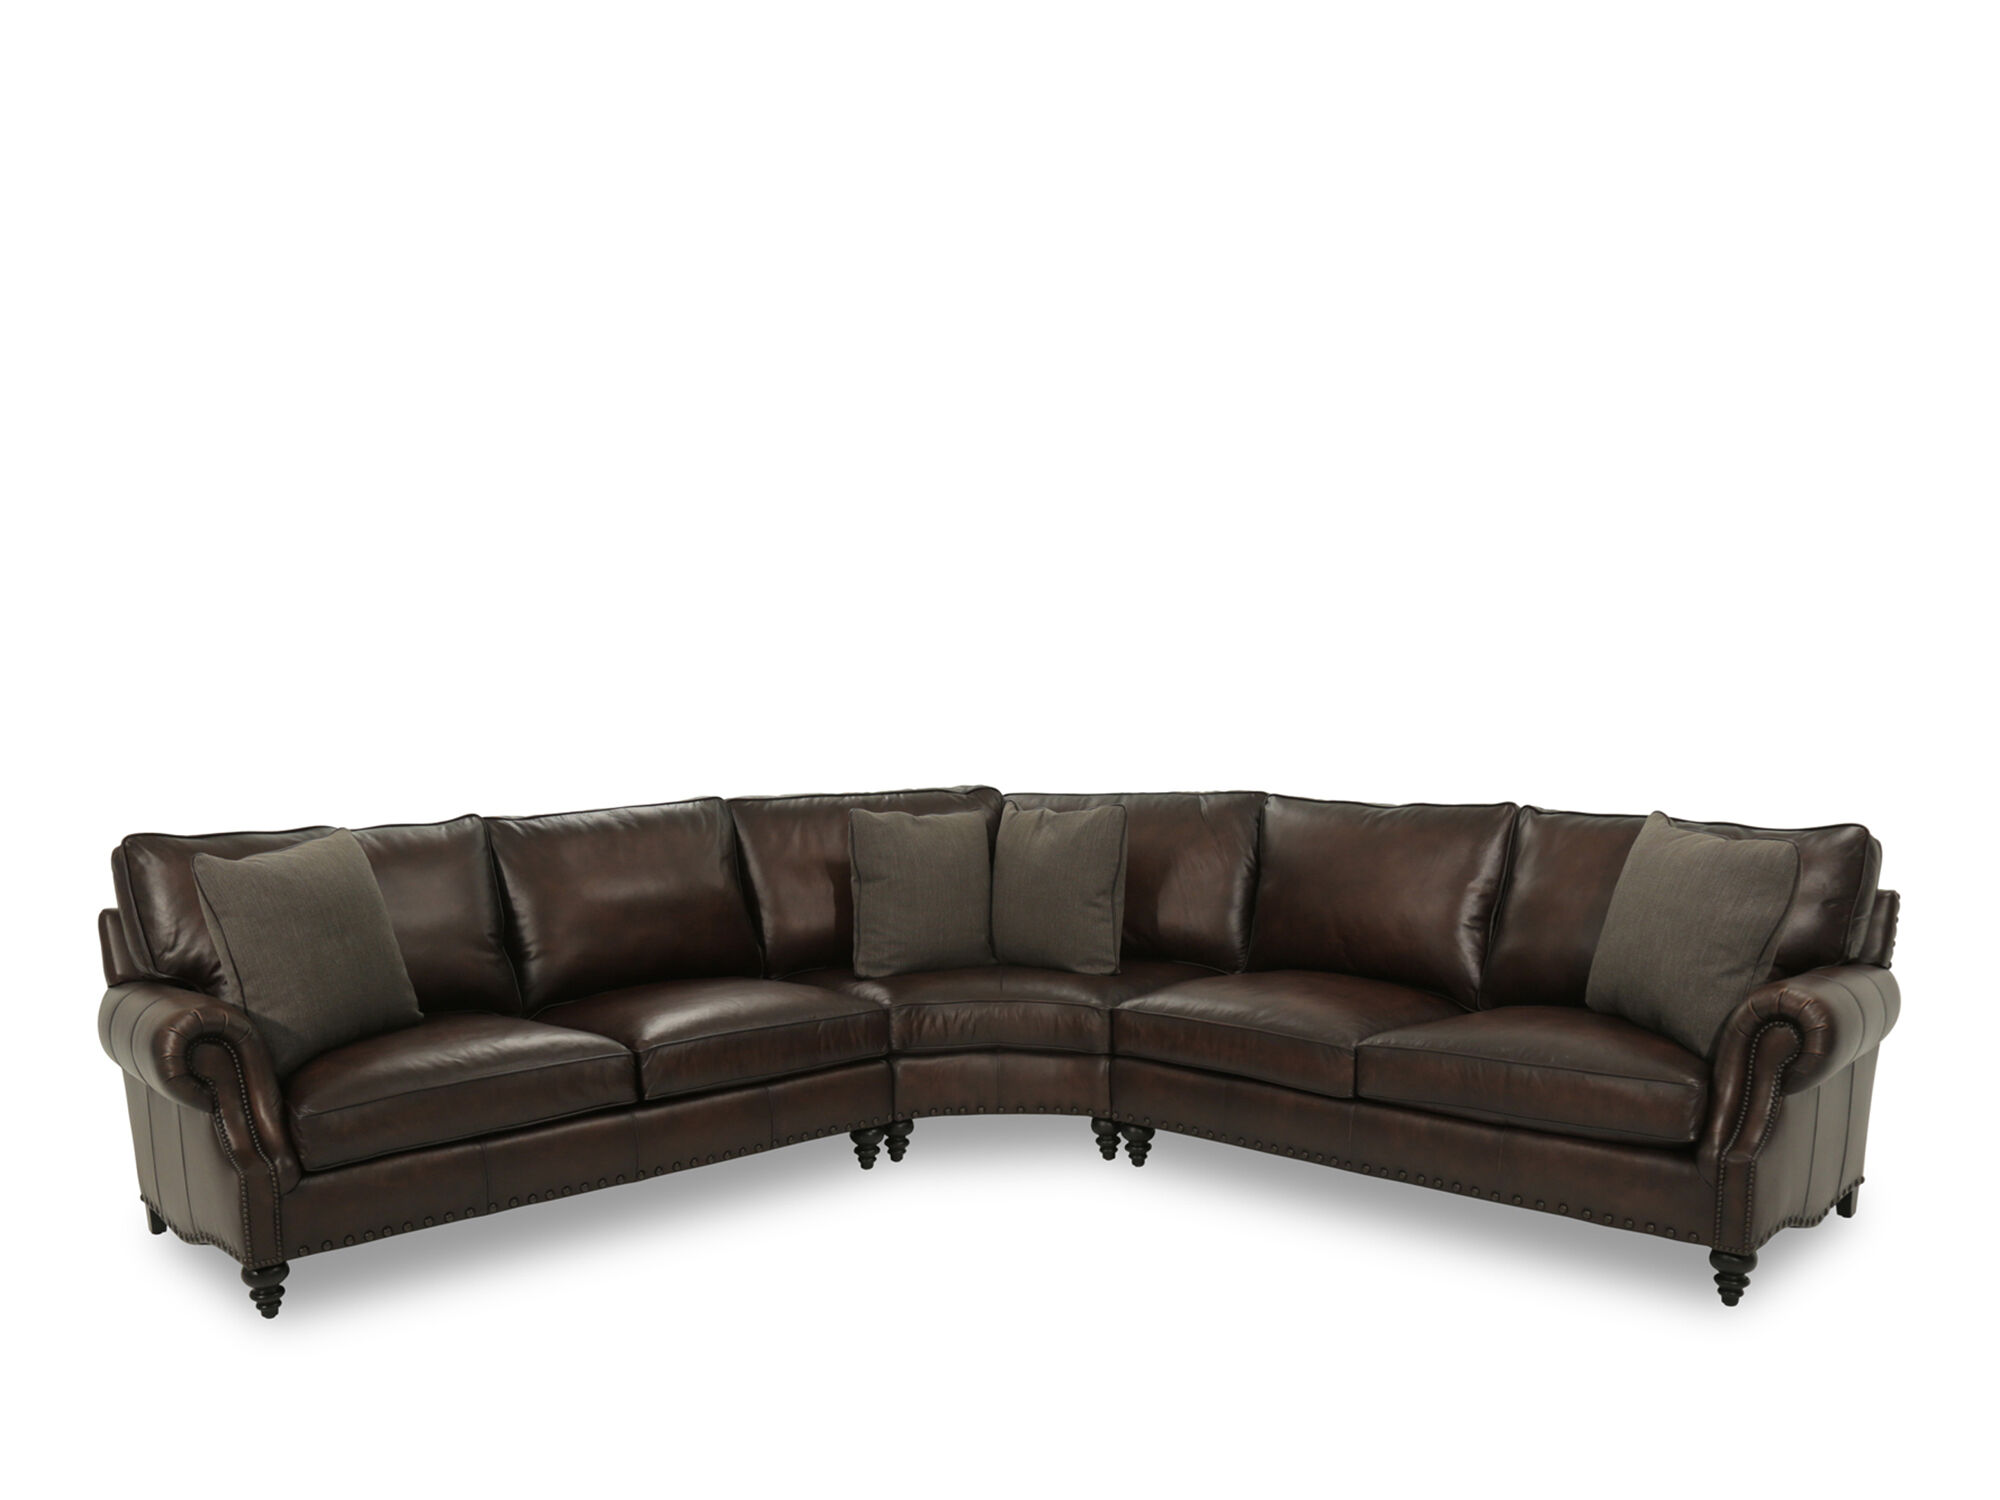 Bernhardt Fleming Leather Sectional SofaMathis Brothers Furniture